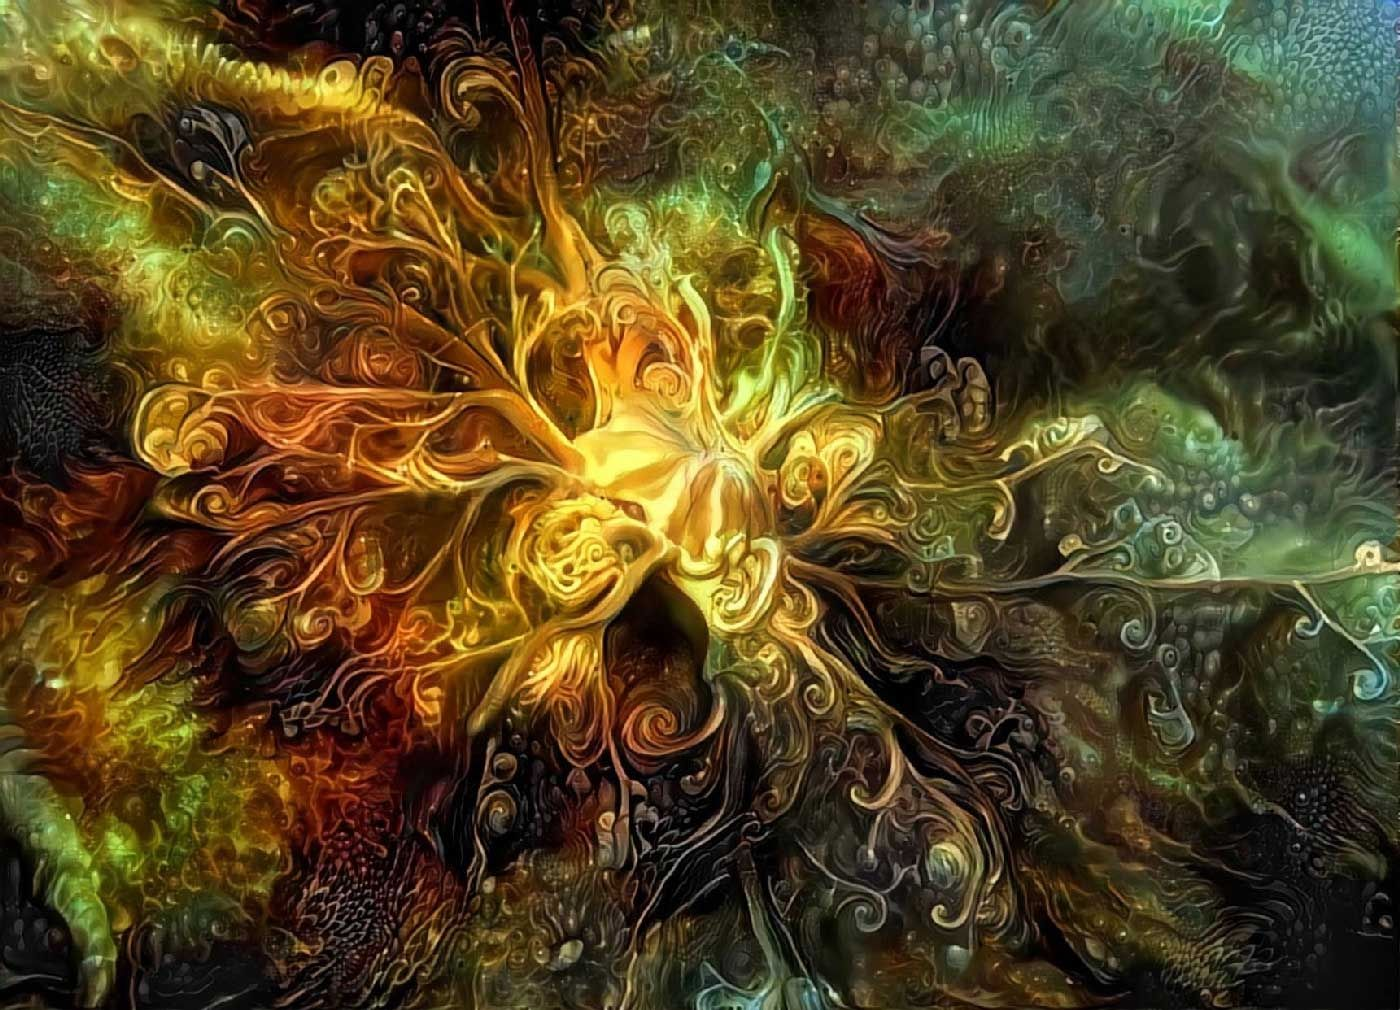 psychedelic-trance-festival-fashion-clothing-sol-seed-of-life-mat-coll-gorgonocephale-remix